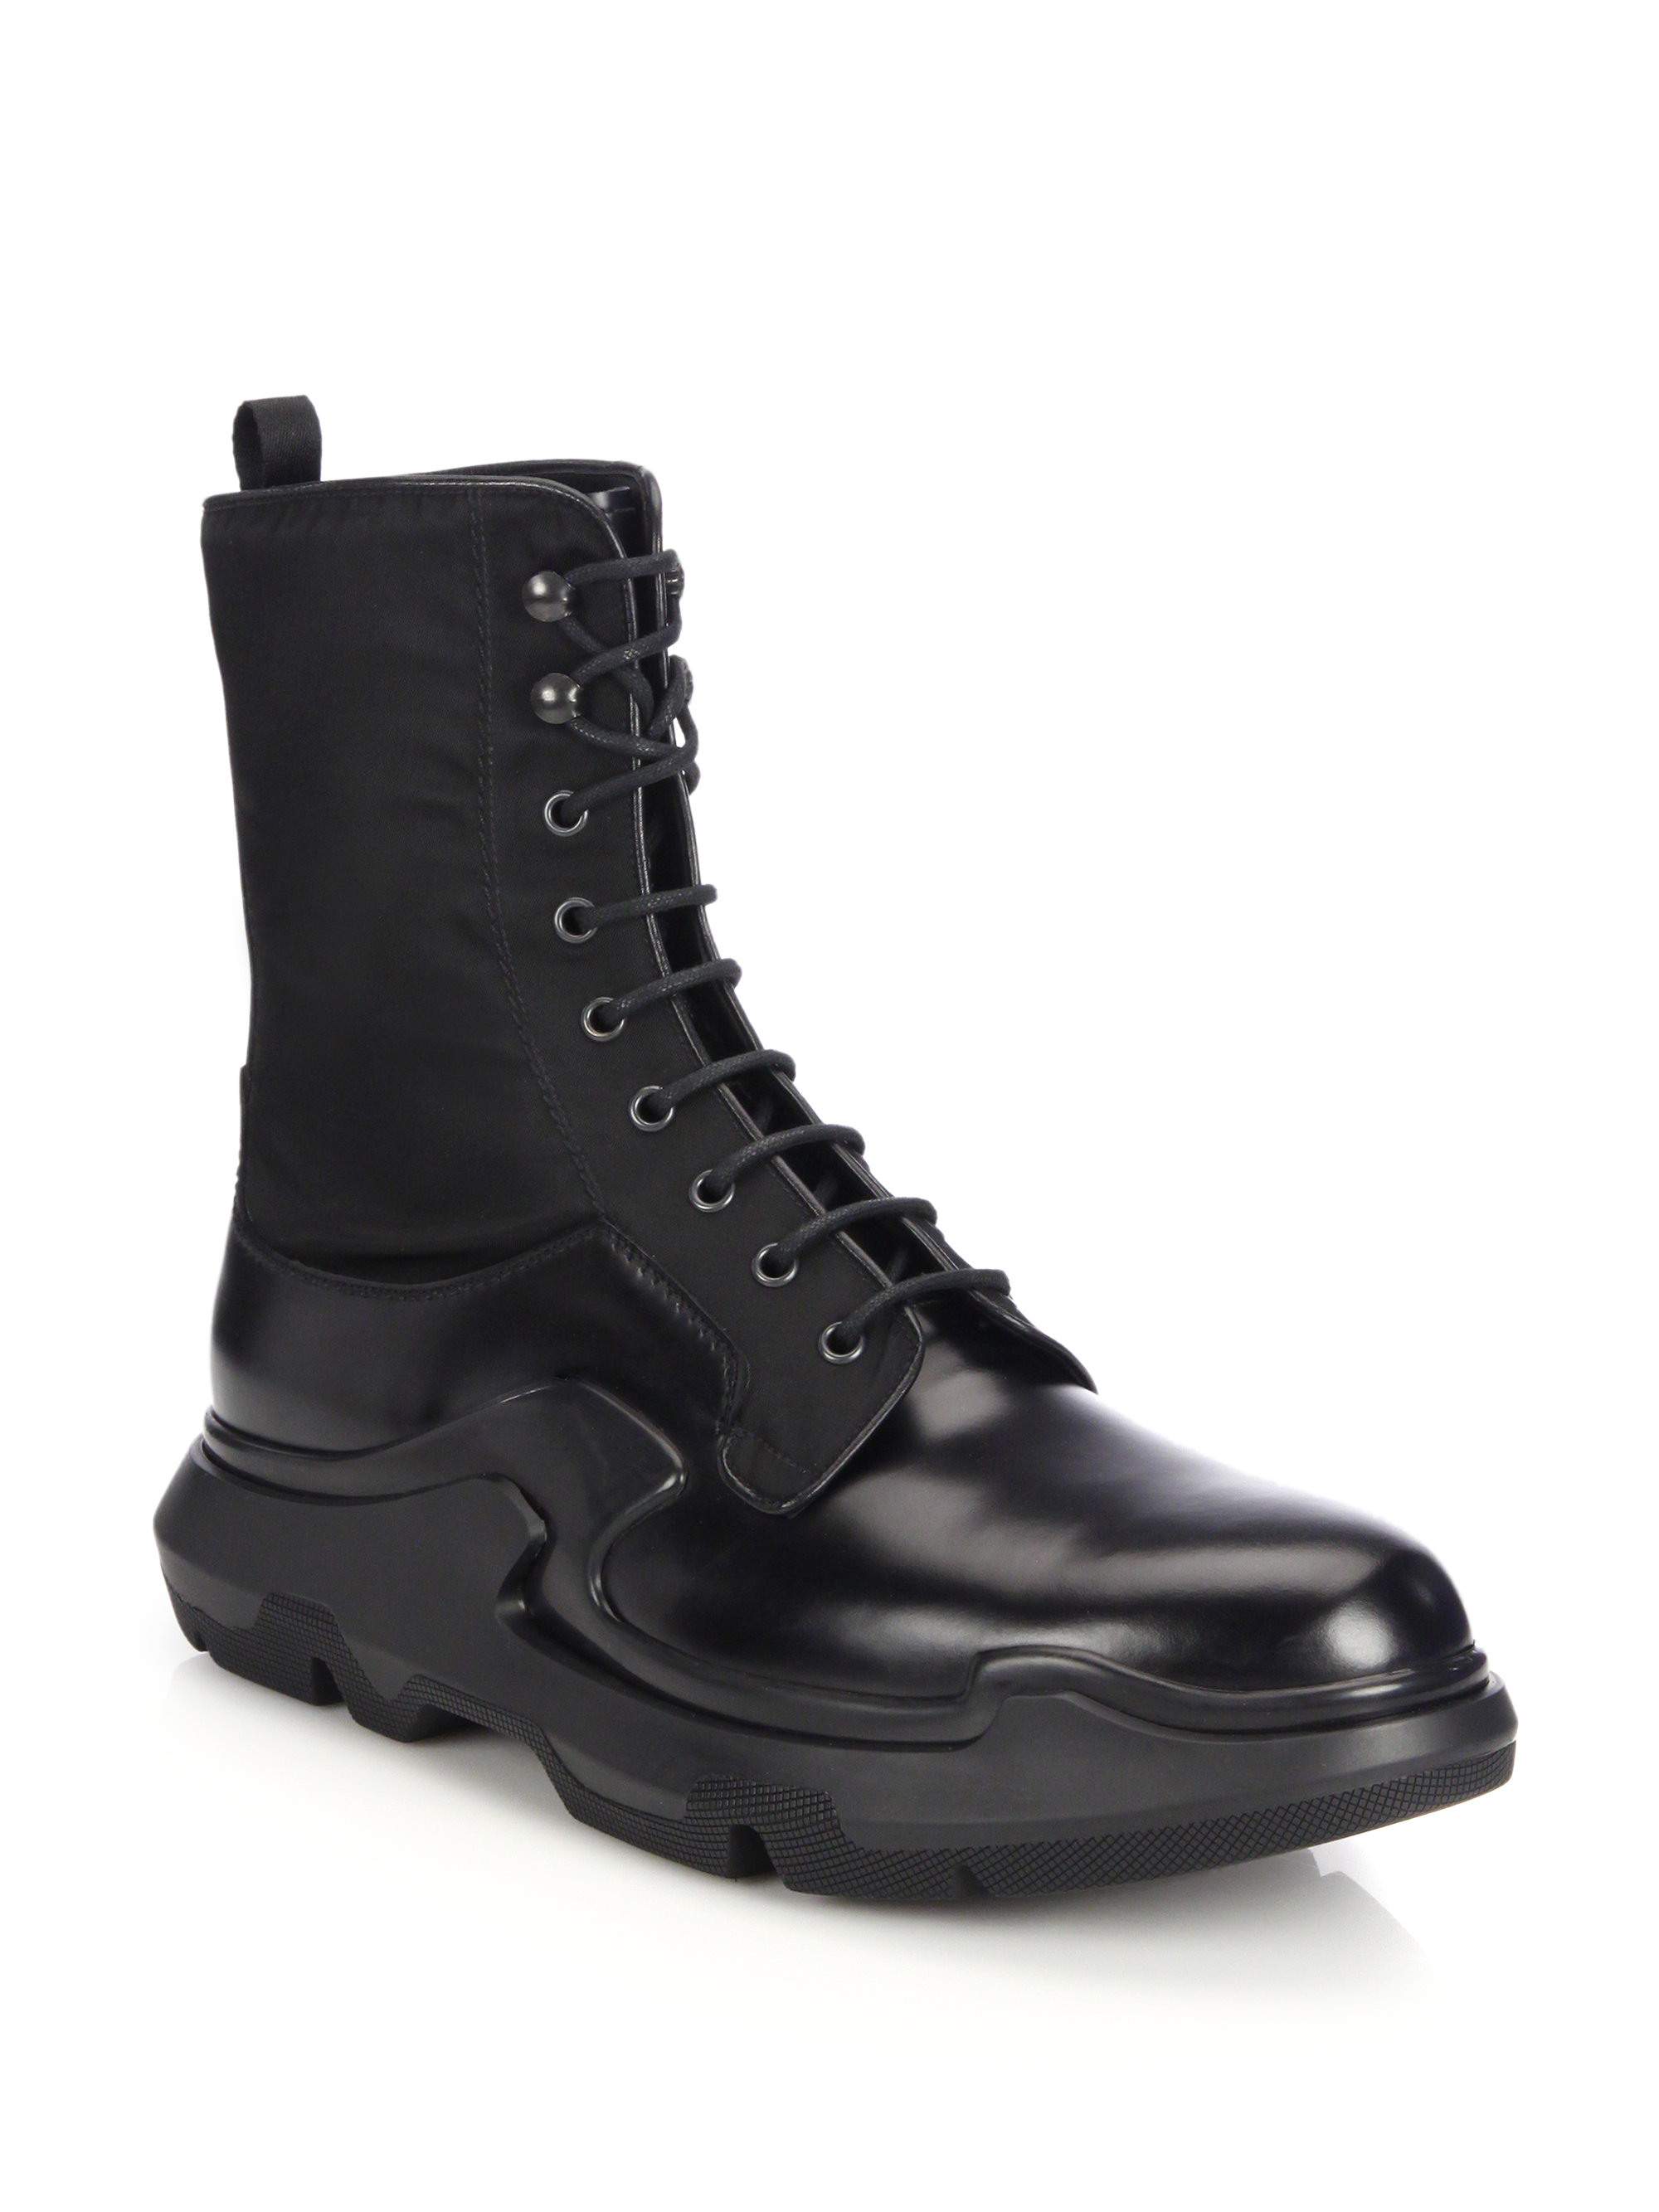 Lyst Prada Runway Lug Sole Leather Amp Nylon Lace Up Boots